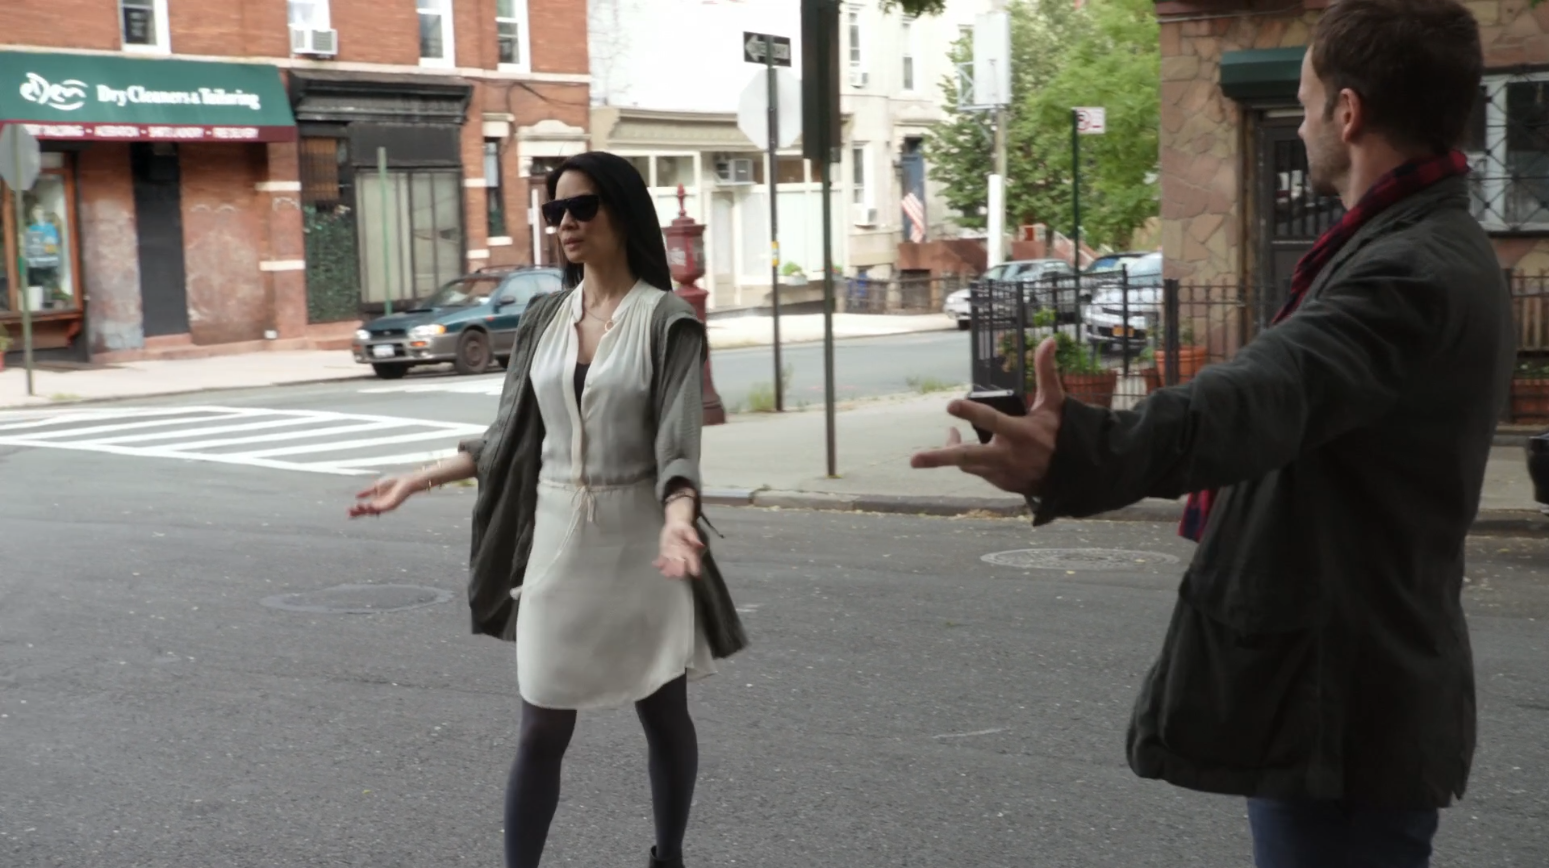 Elementary episode 7 'One way to get off' Review